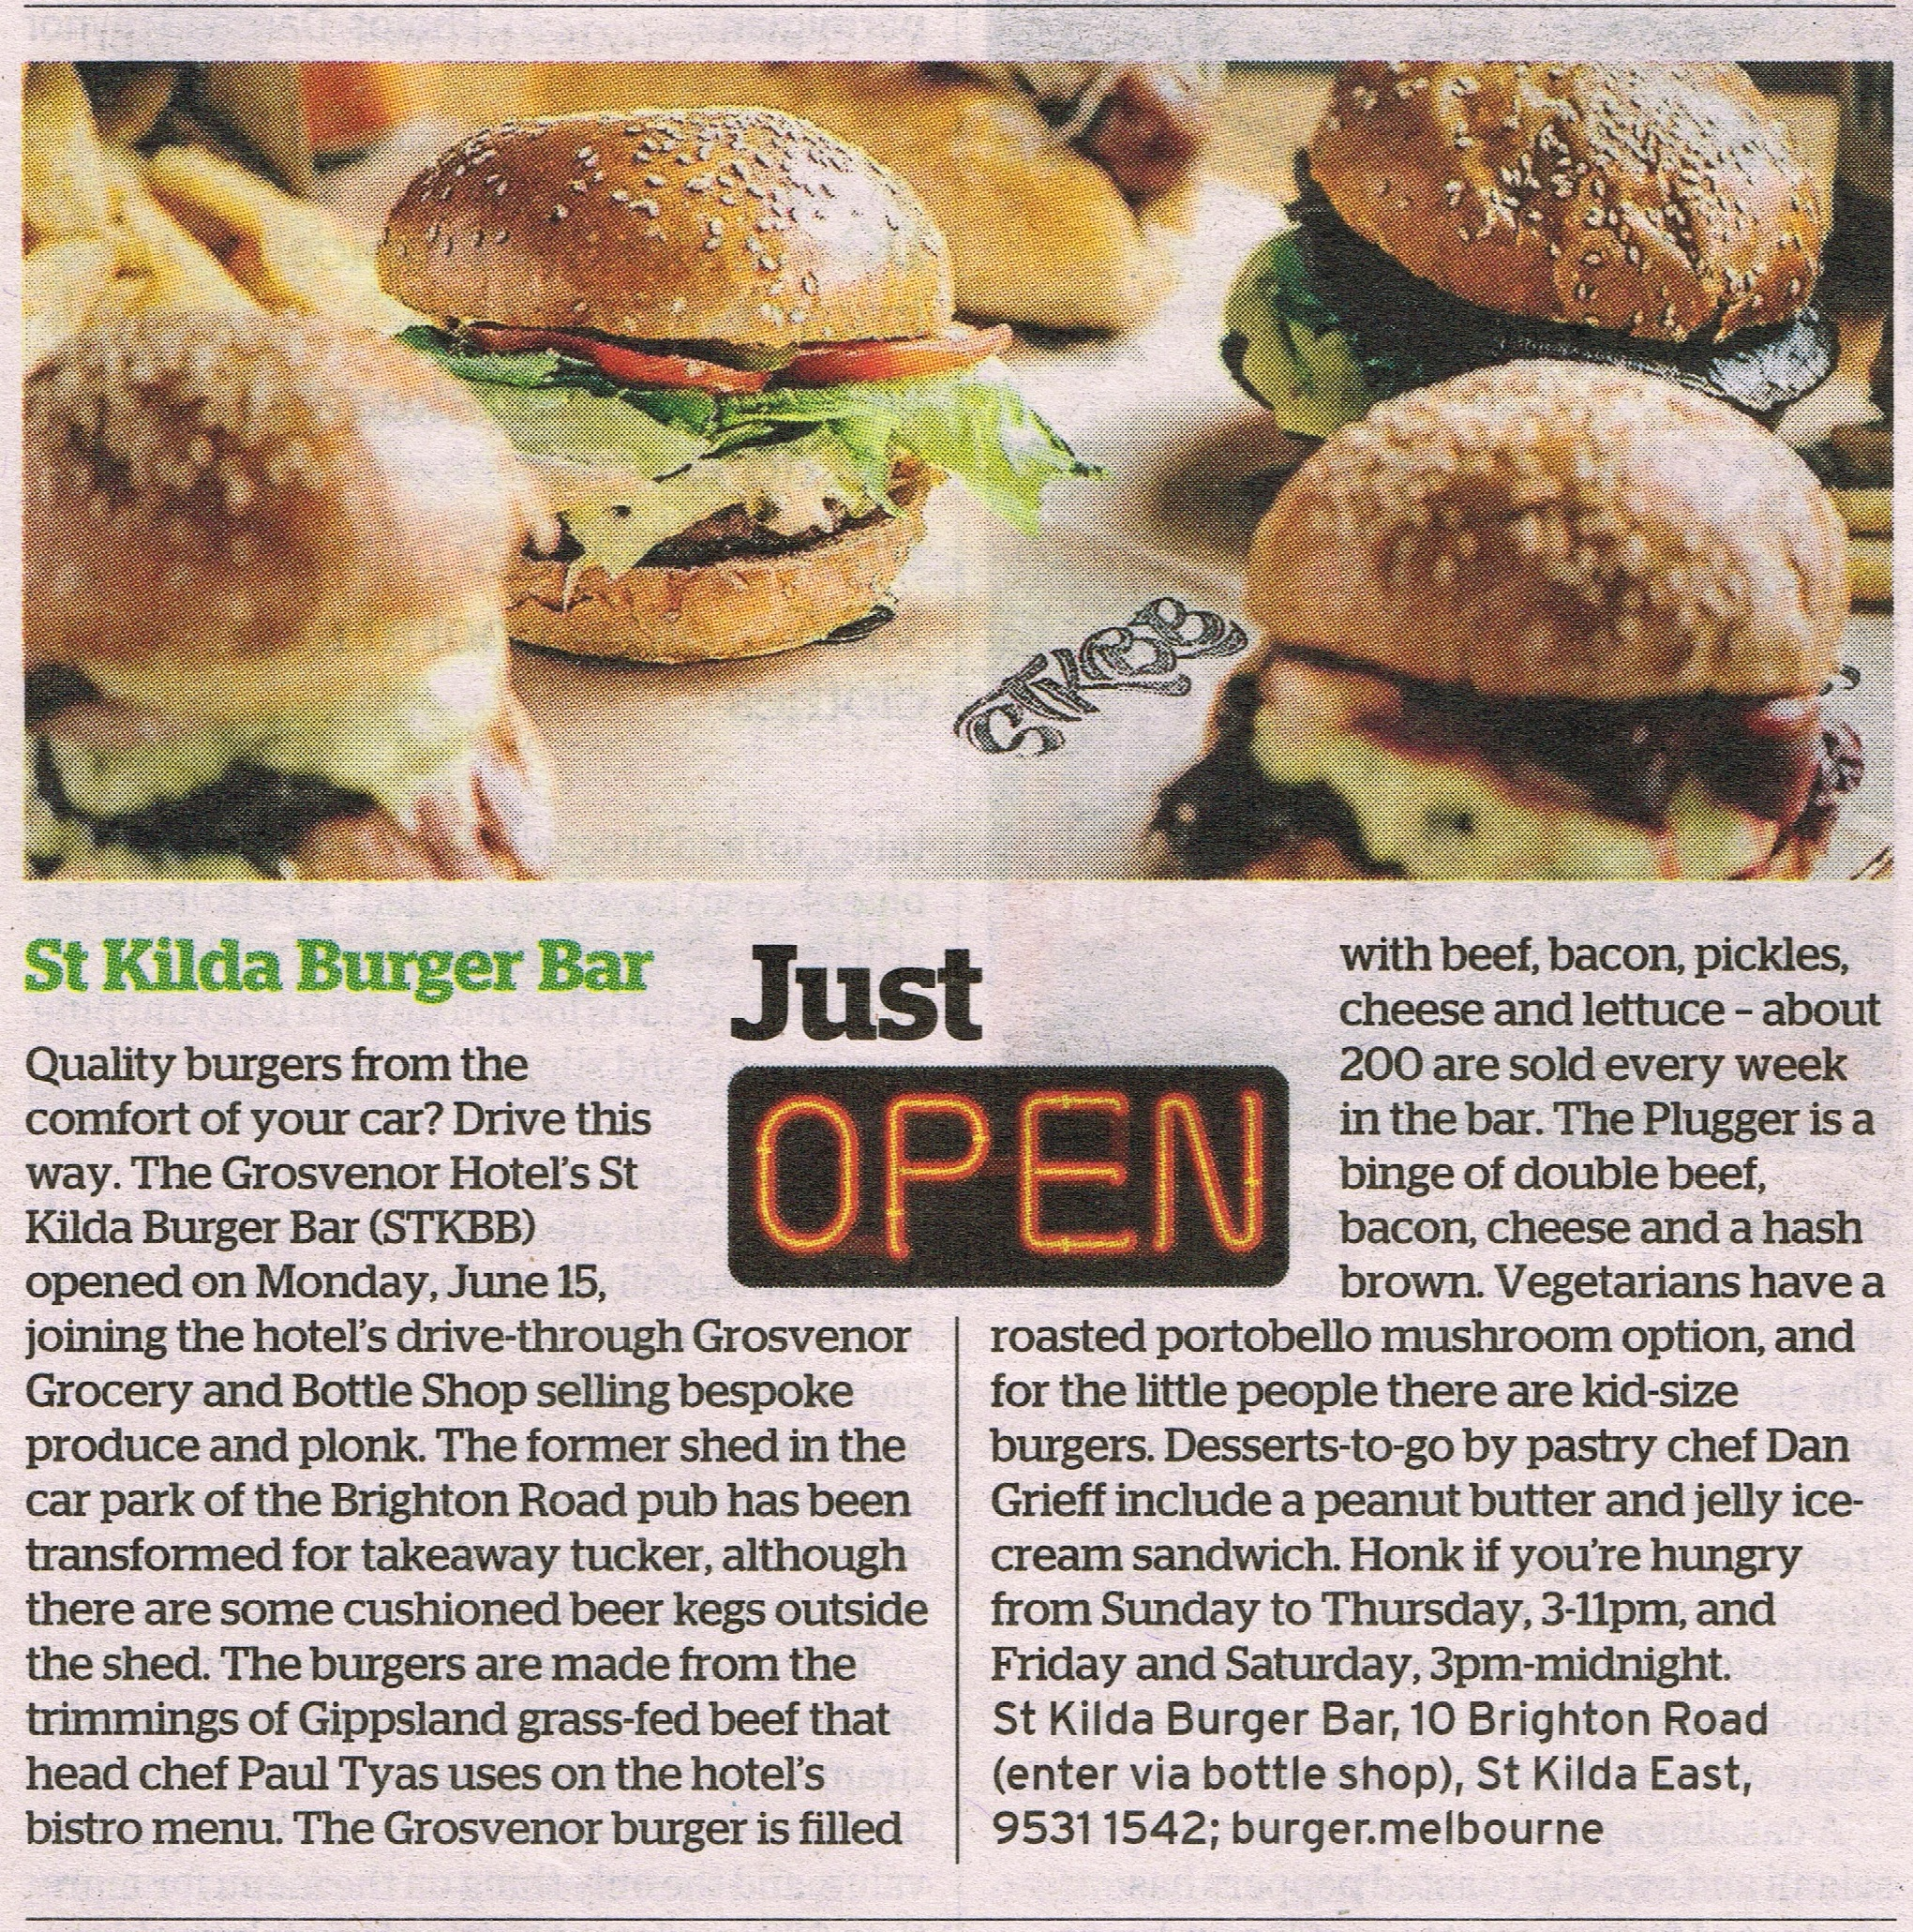 Just Open - St Kilda Burger Bar